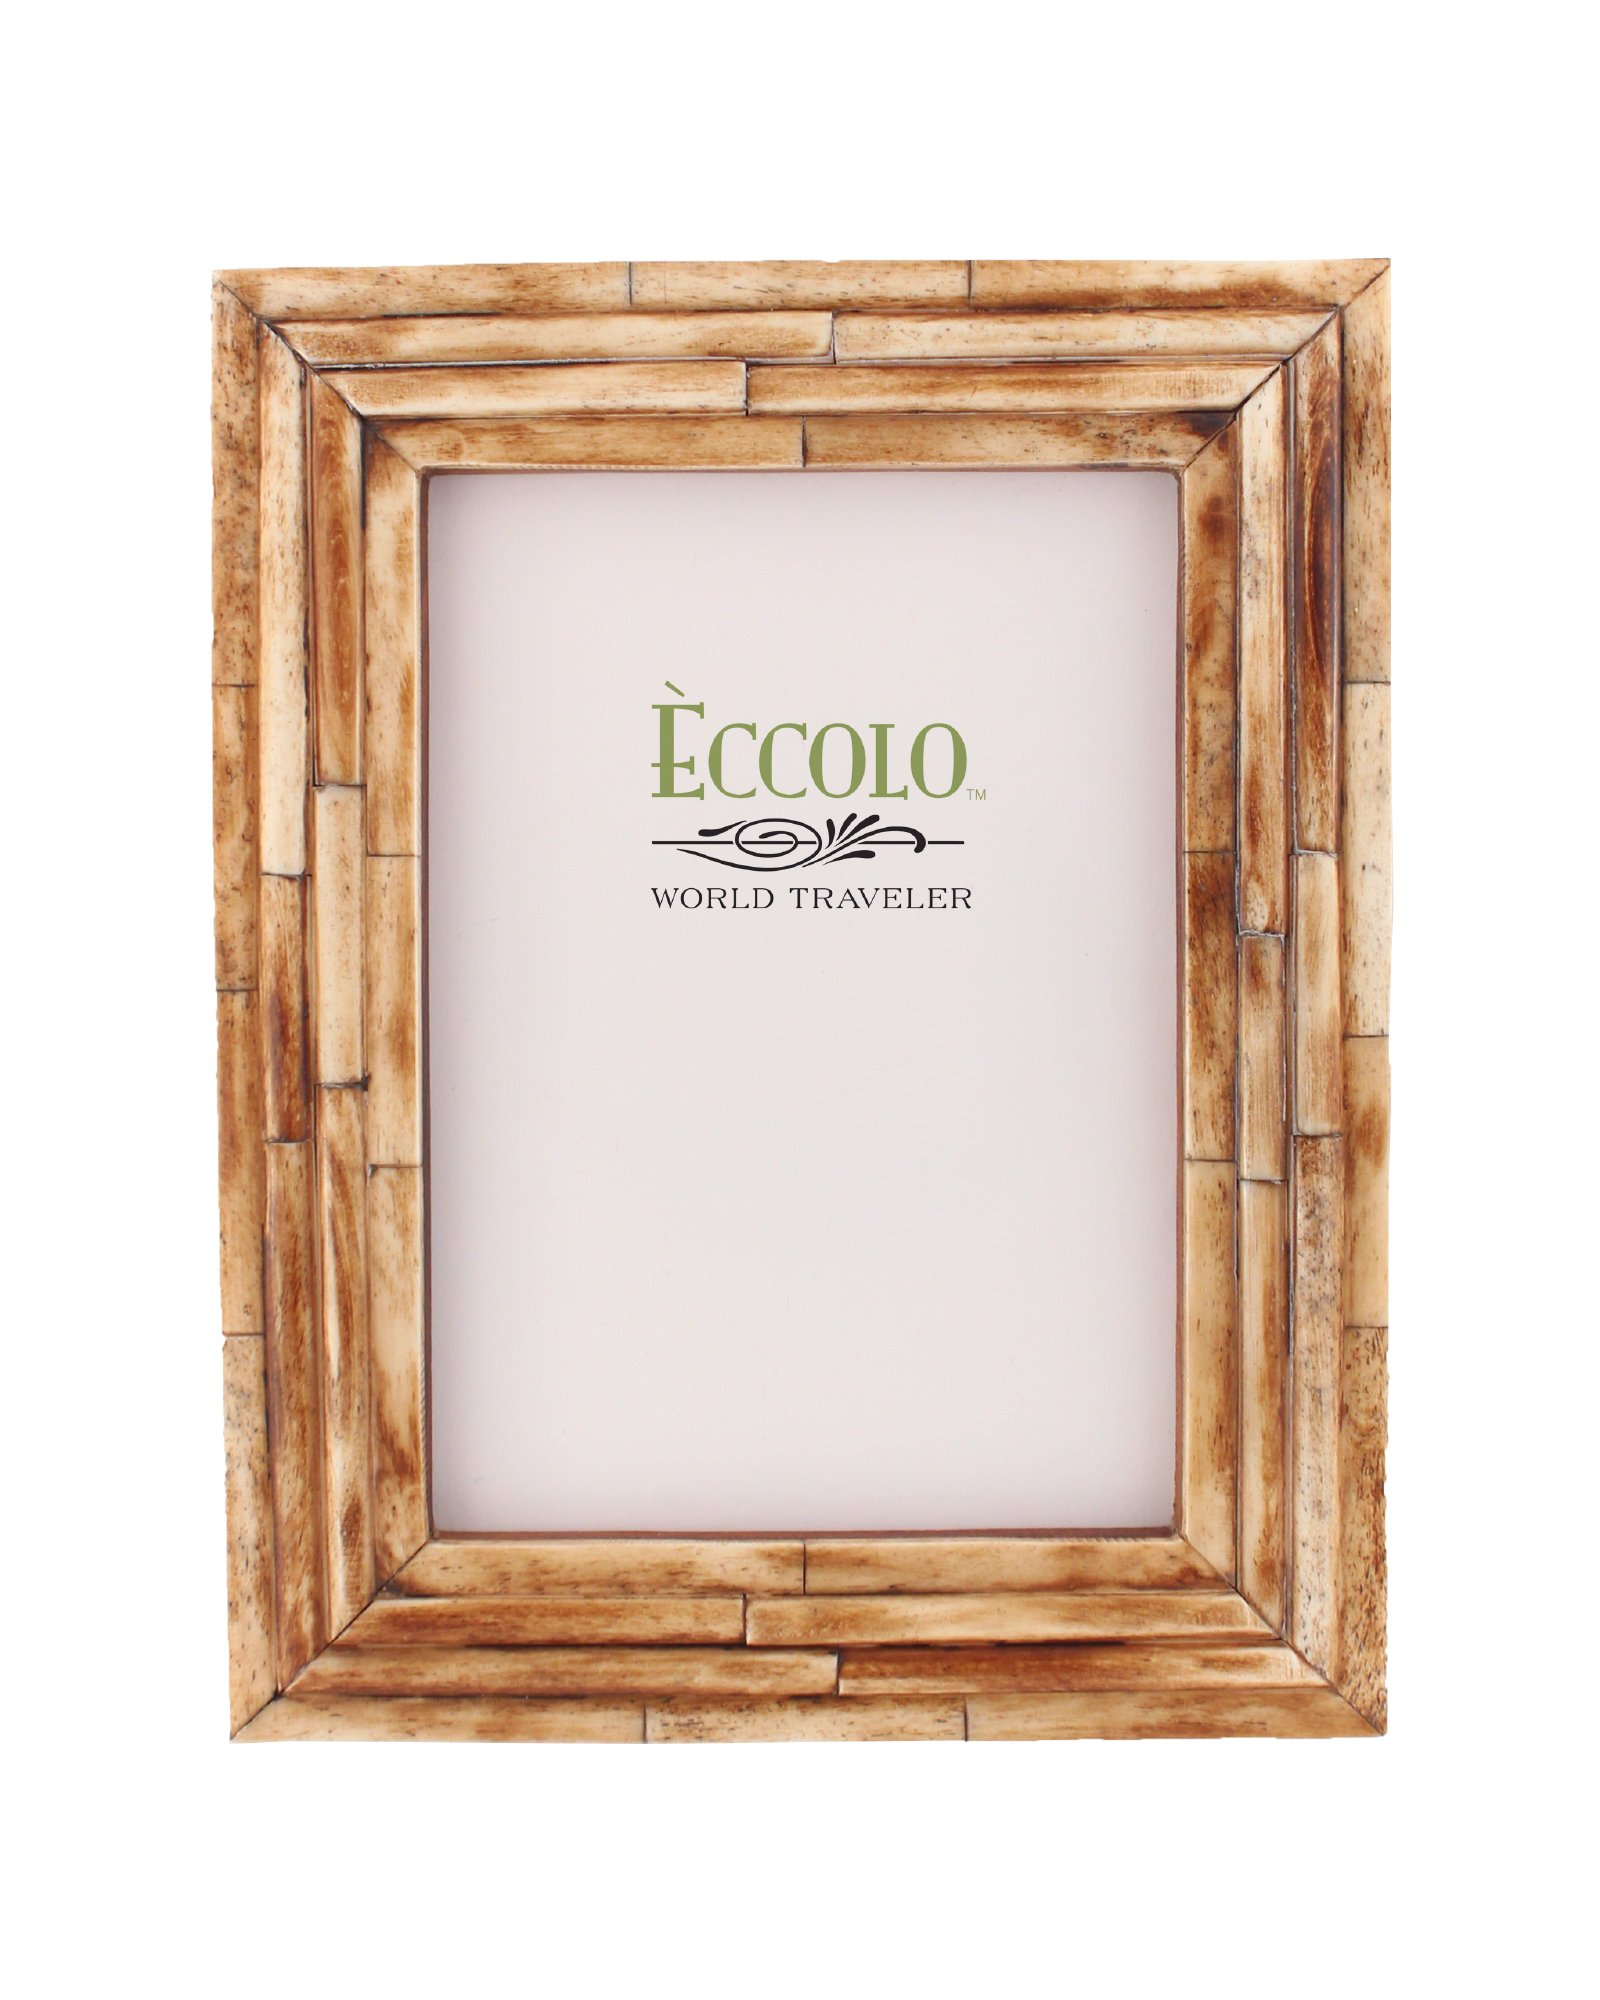 Eccolo World Traveler Naturals Collection Bangalore Raised Interior Frame, Holds 5 by 7-Inch Photo, Brown